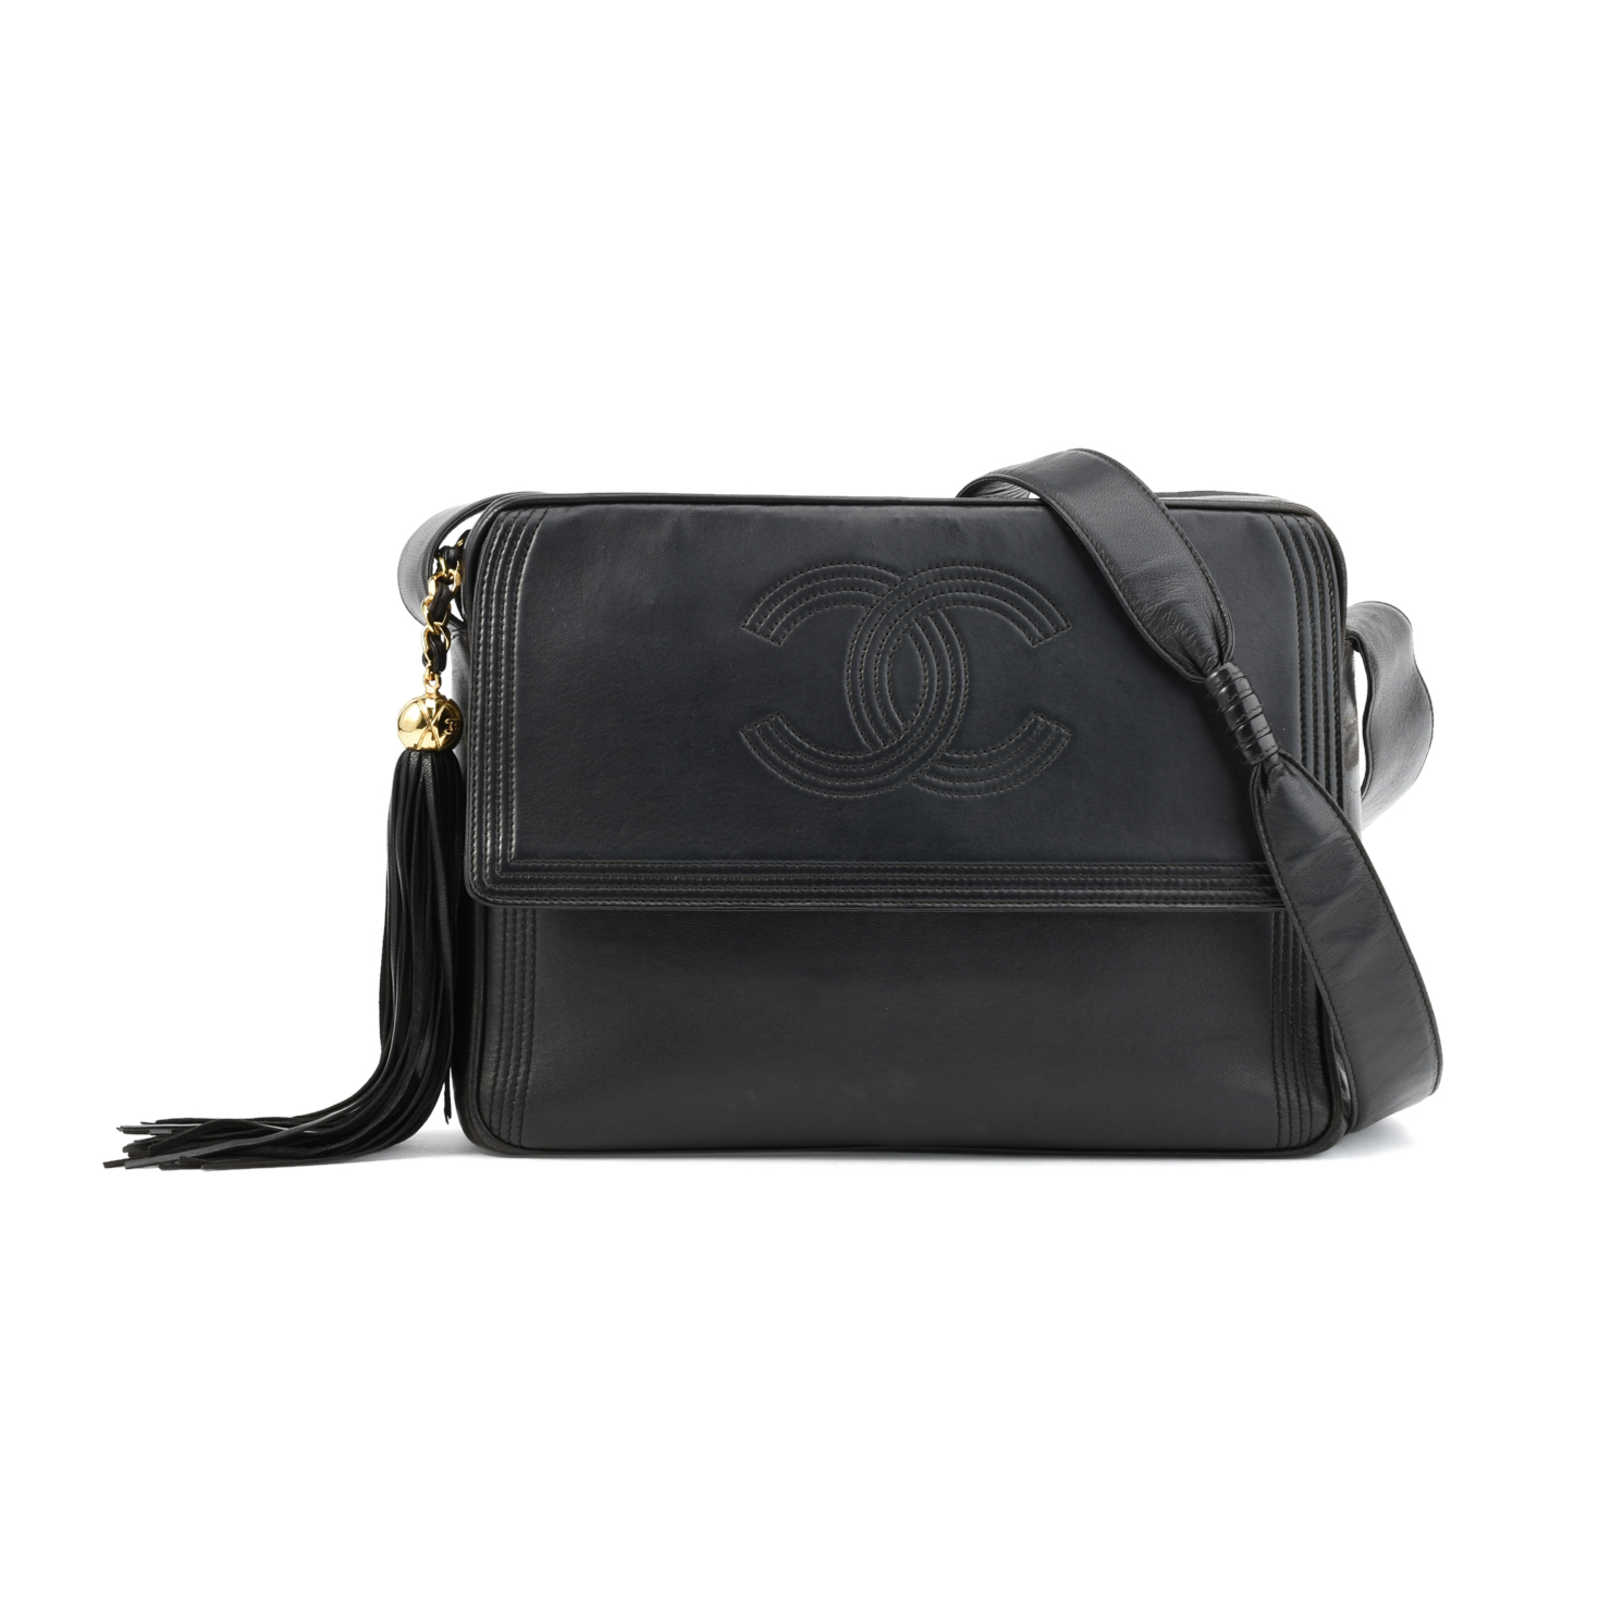 bf9af60d12ec Authentic Vintage Chanel Tassel Messenger Bag (PSS-411-00001) - Thumbnail 0  ...